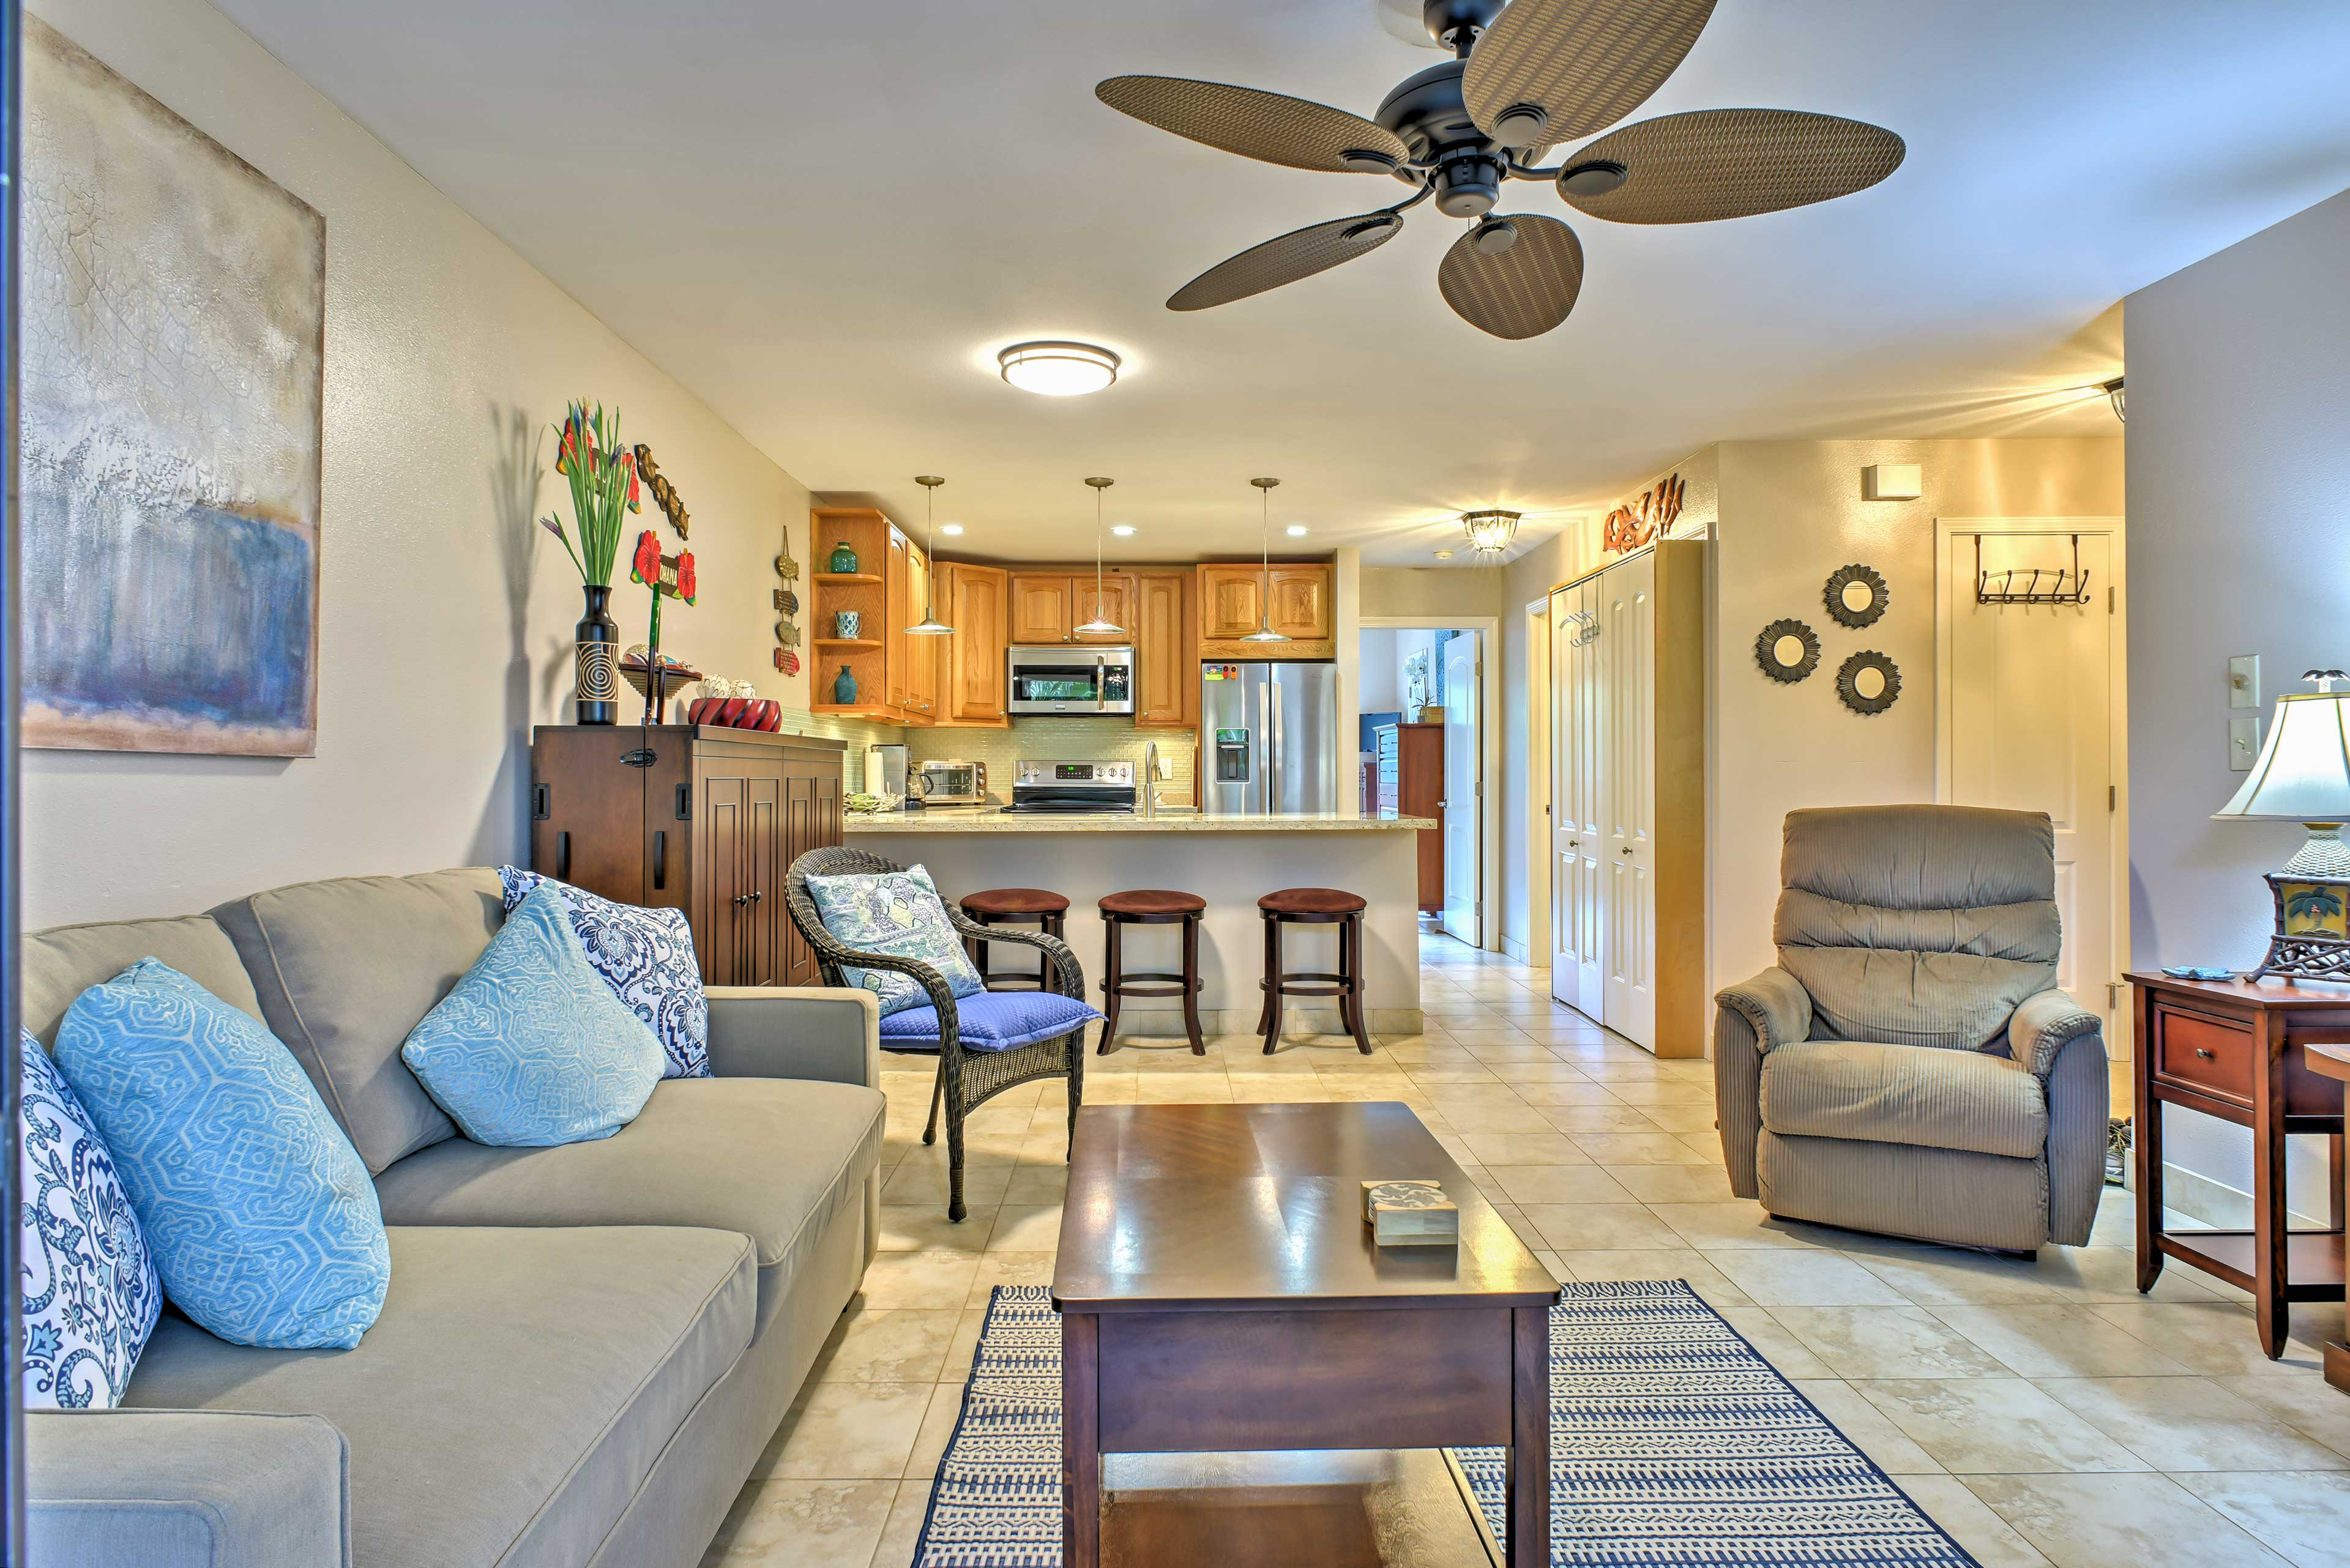 Ceiling fans help keep you cool while you relax inside.